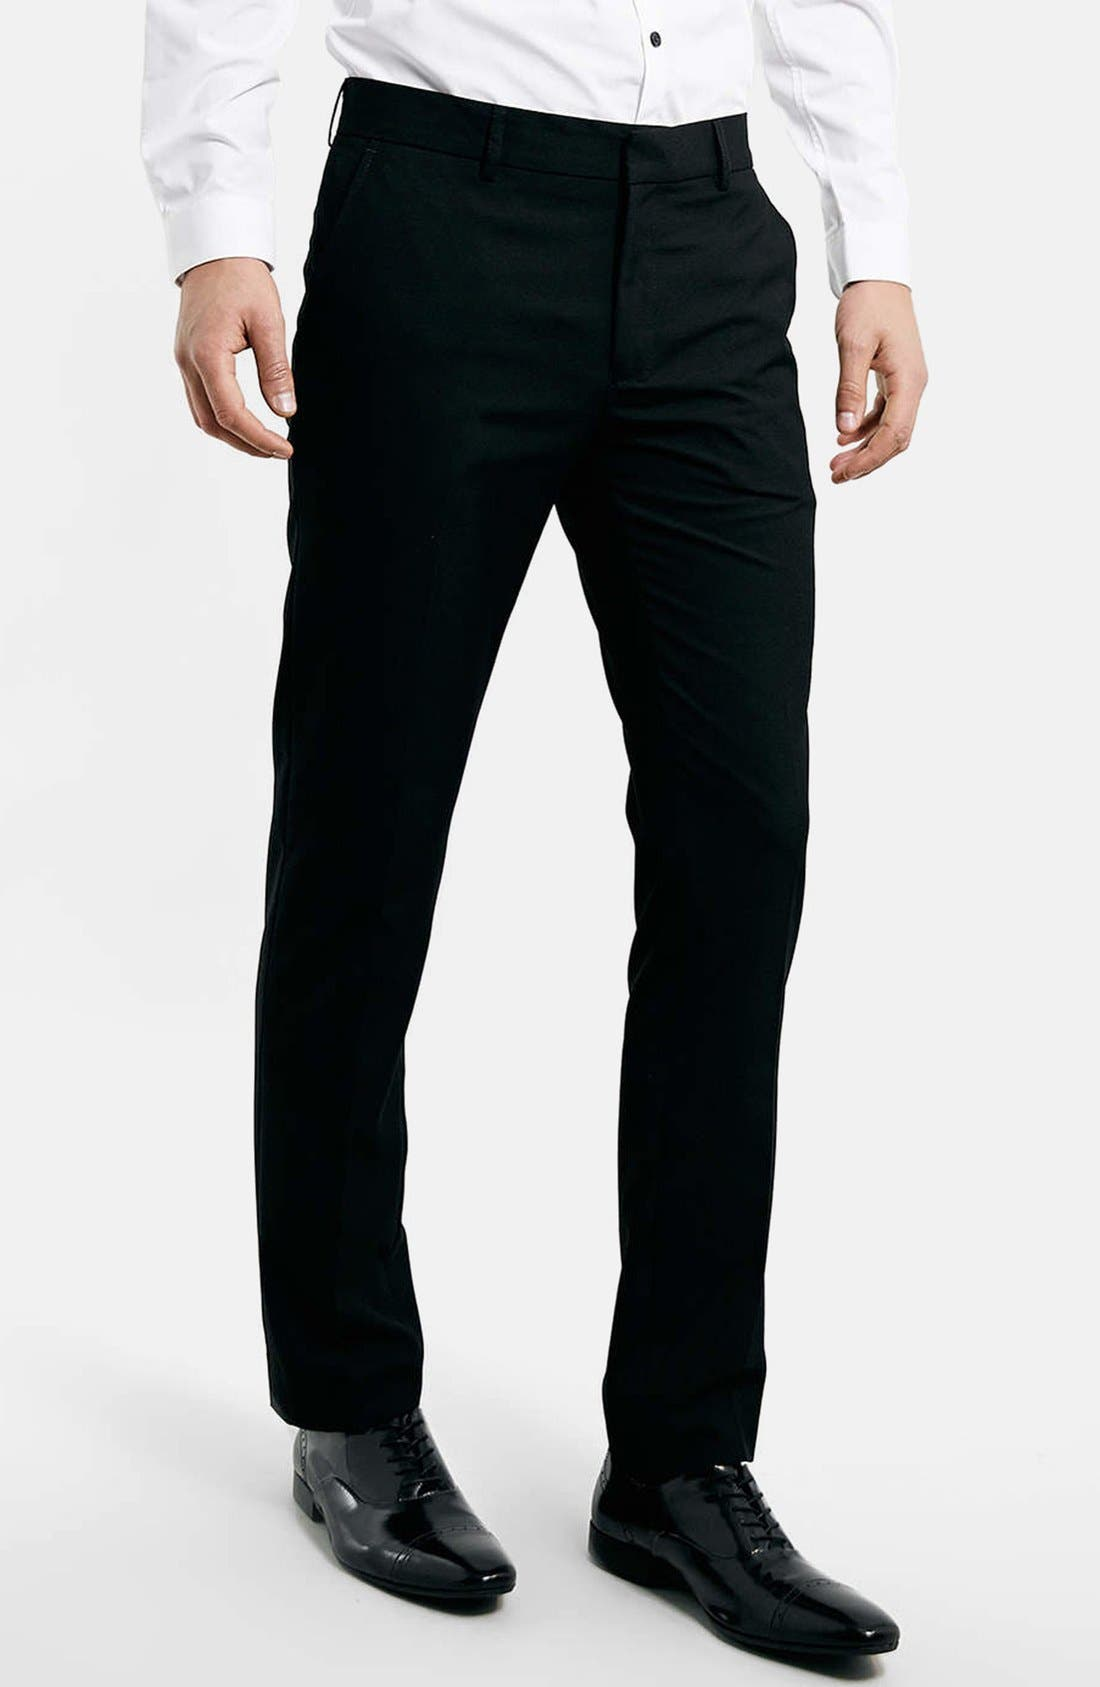 Main Image - Topman Black Skinny Fit Trousers